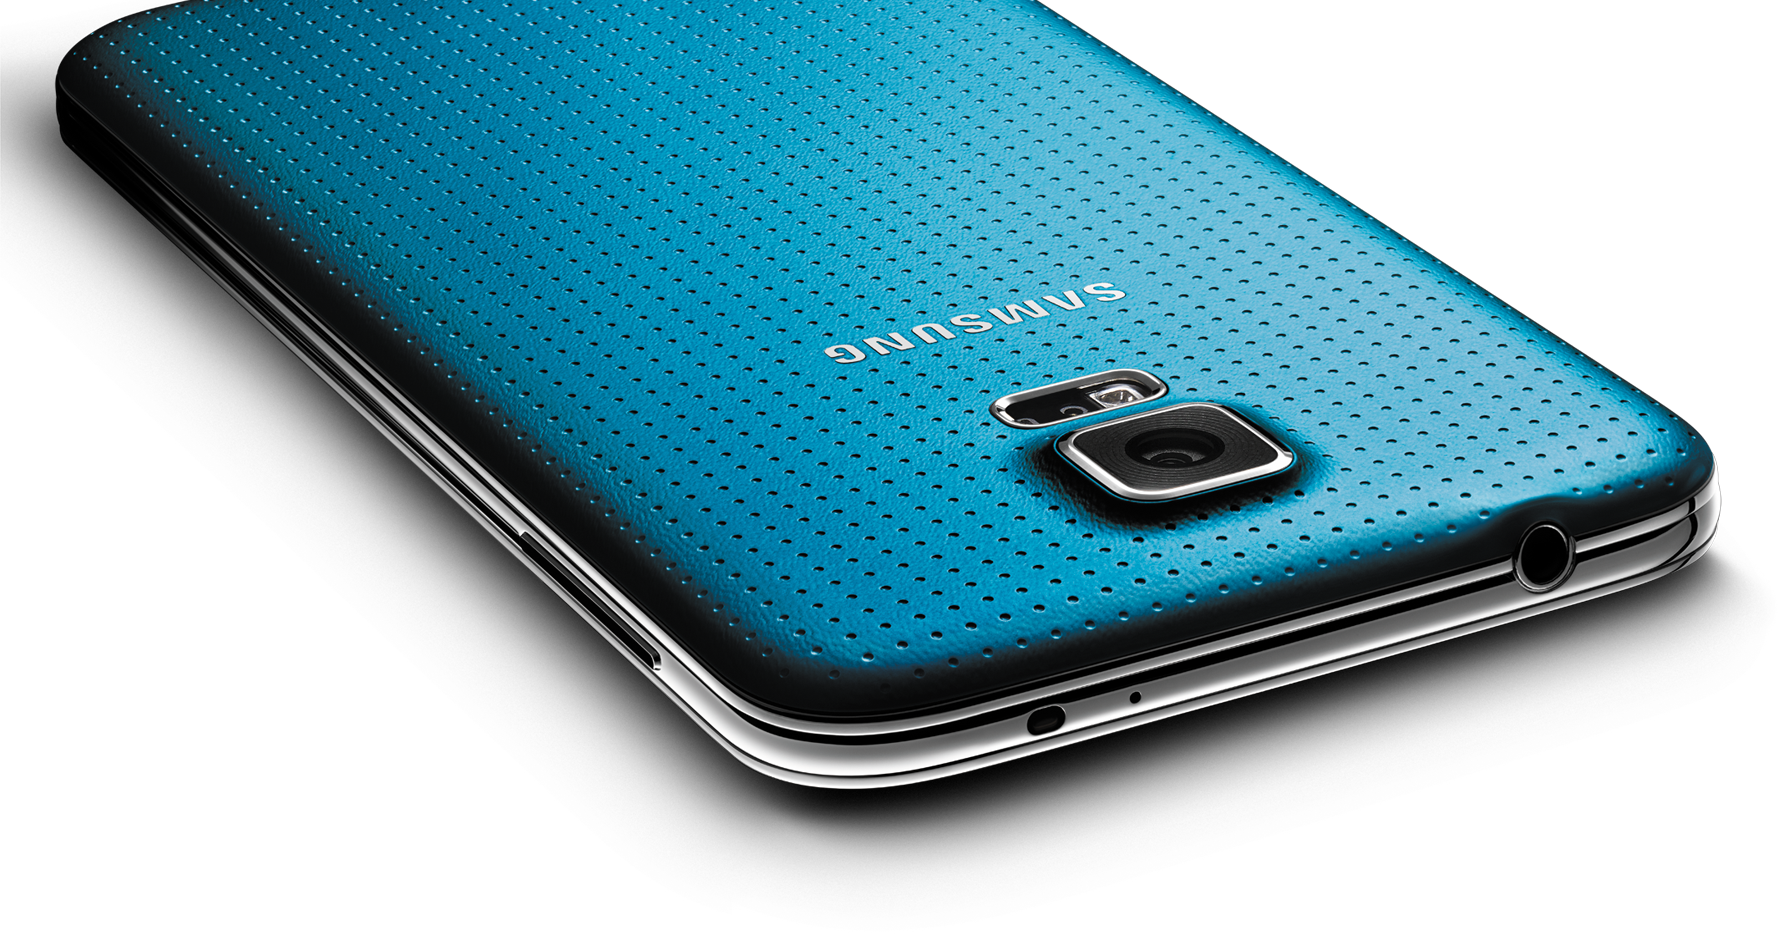 samsung galaxy s5 mini in android 5 0 g ncellemesi ak ll telefon. Black Bedroom Furniture Sets. Home Design Ideas